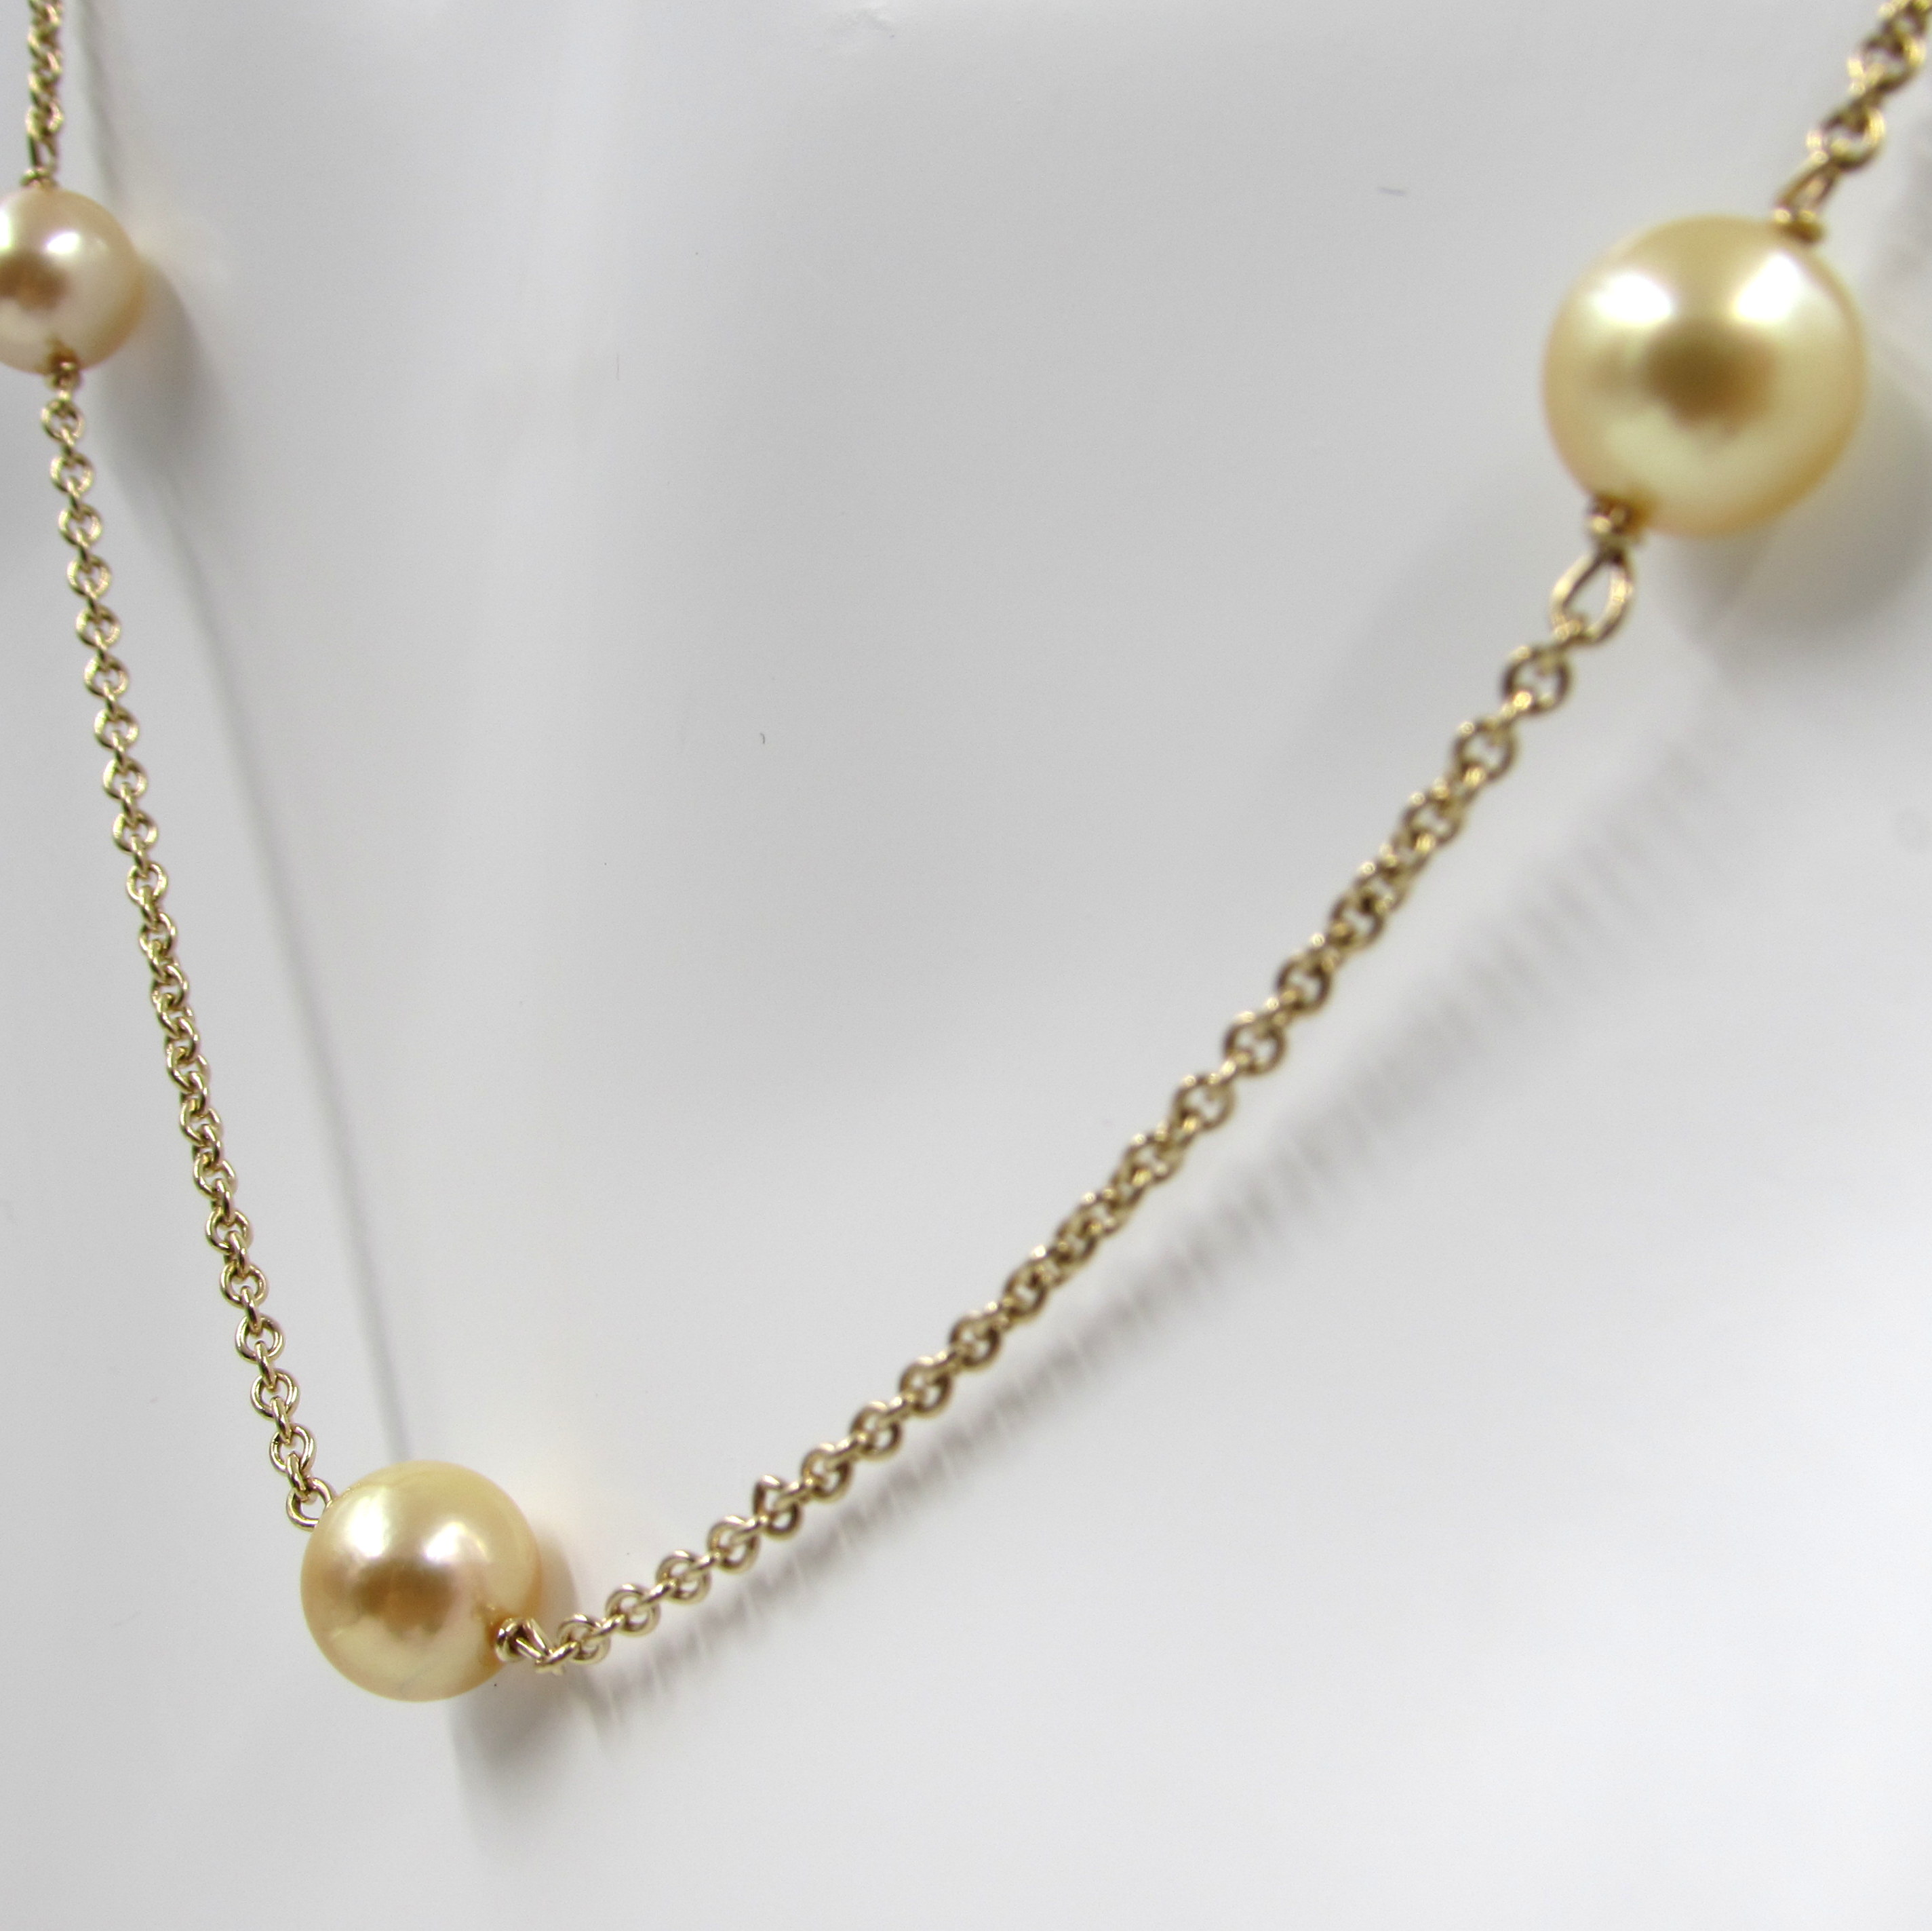 dark gold tincup tcdgz golden gssp pearls necklace with